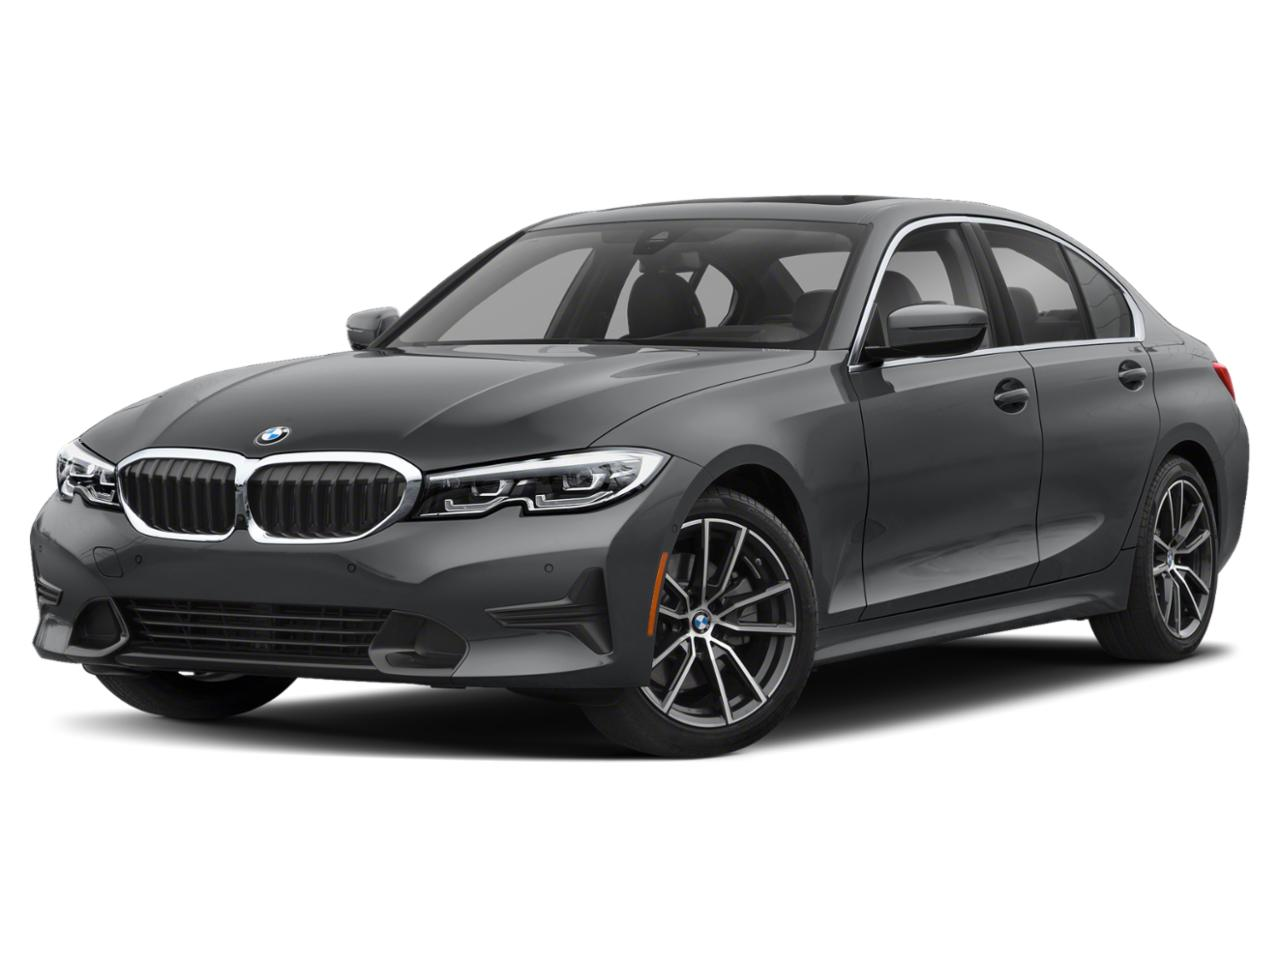 2020 BMW 330i xDrive Vehicle Photo in Spokane, WA 99207